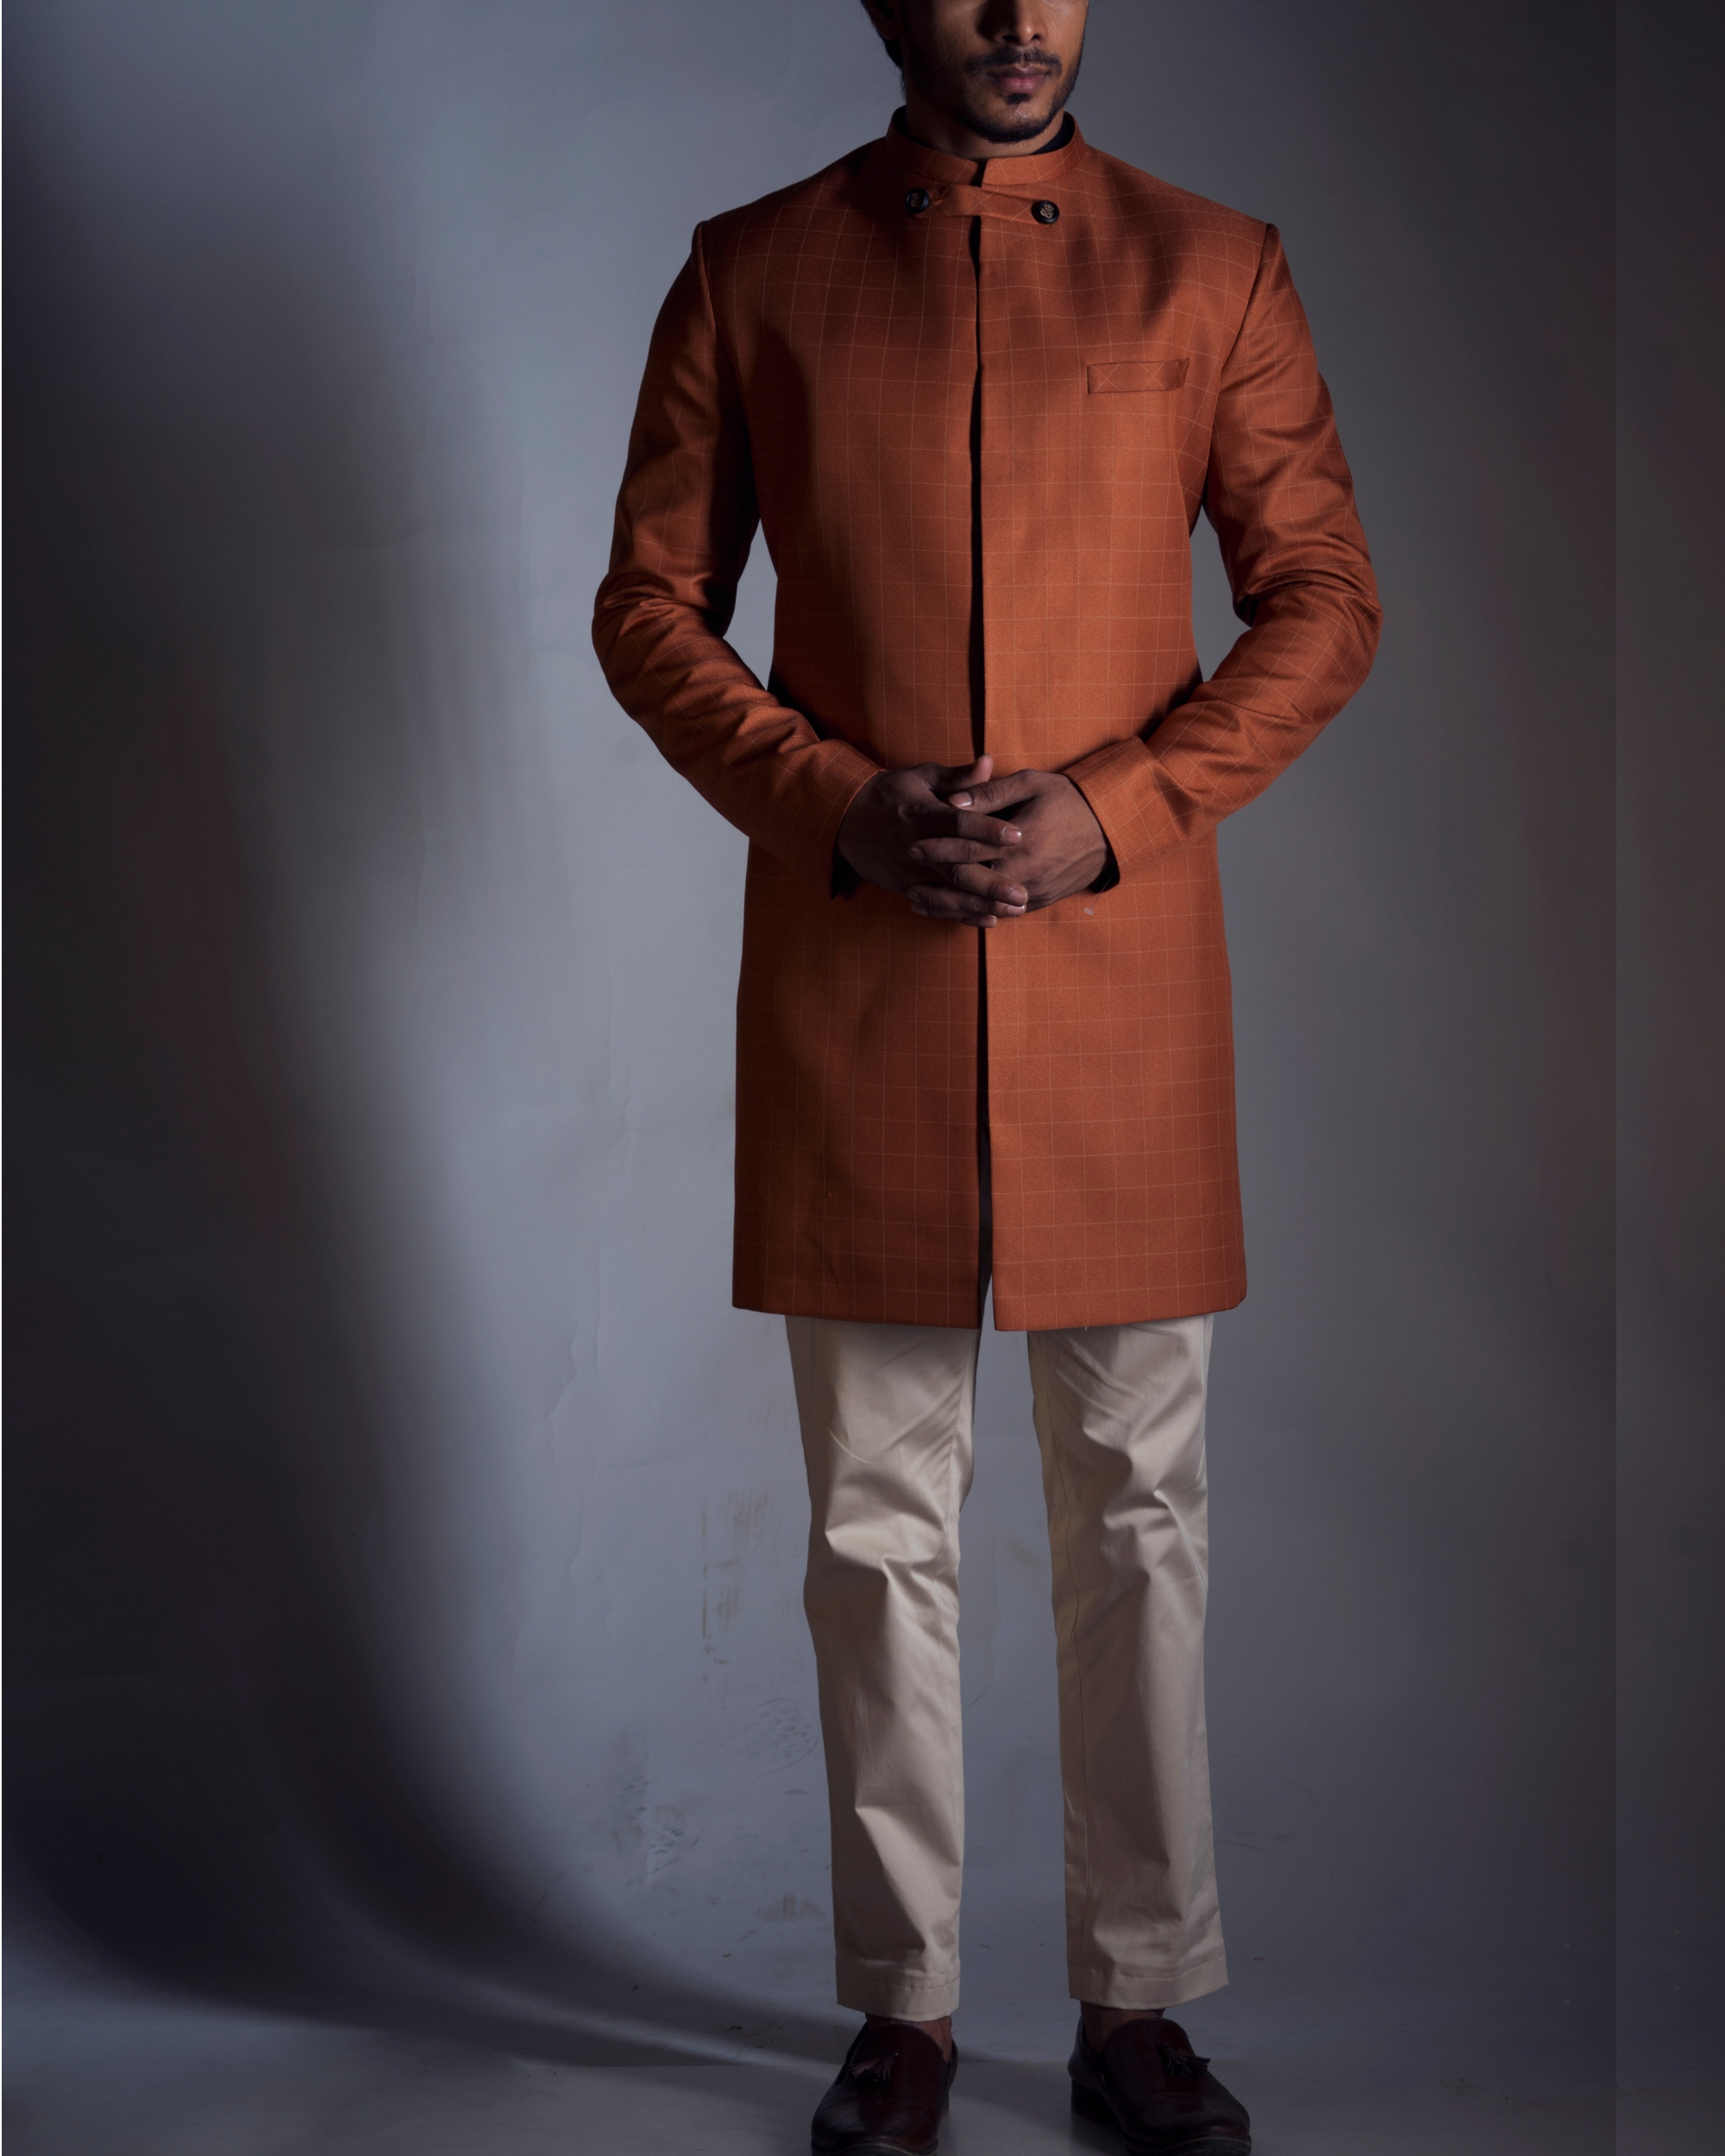 Rust orange achkan with cream trousers